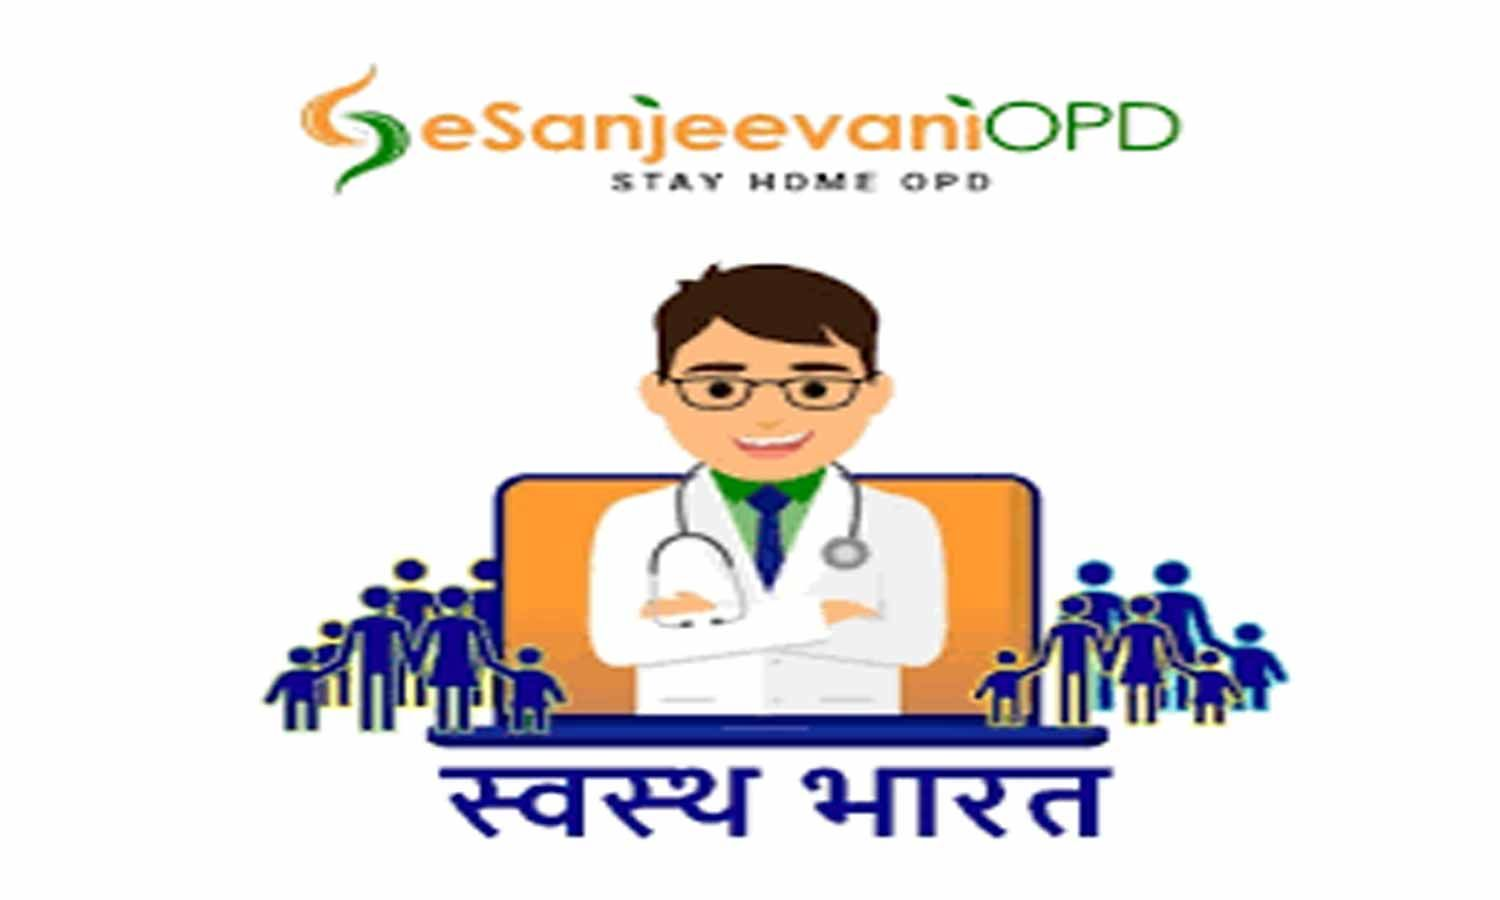 Punjab to Start E Sanjeevani OPD for Gynaecology Services From 1st June: Health Minster